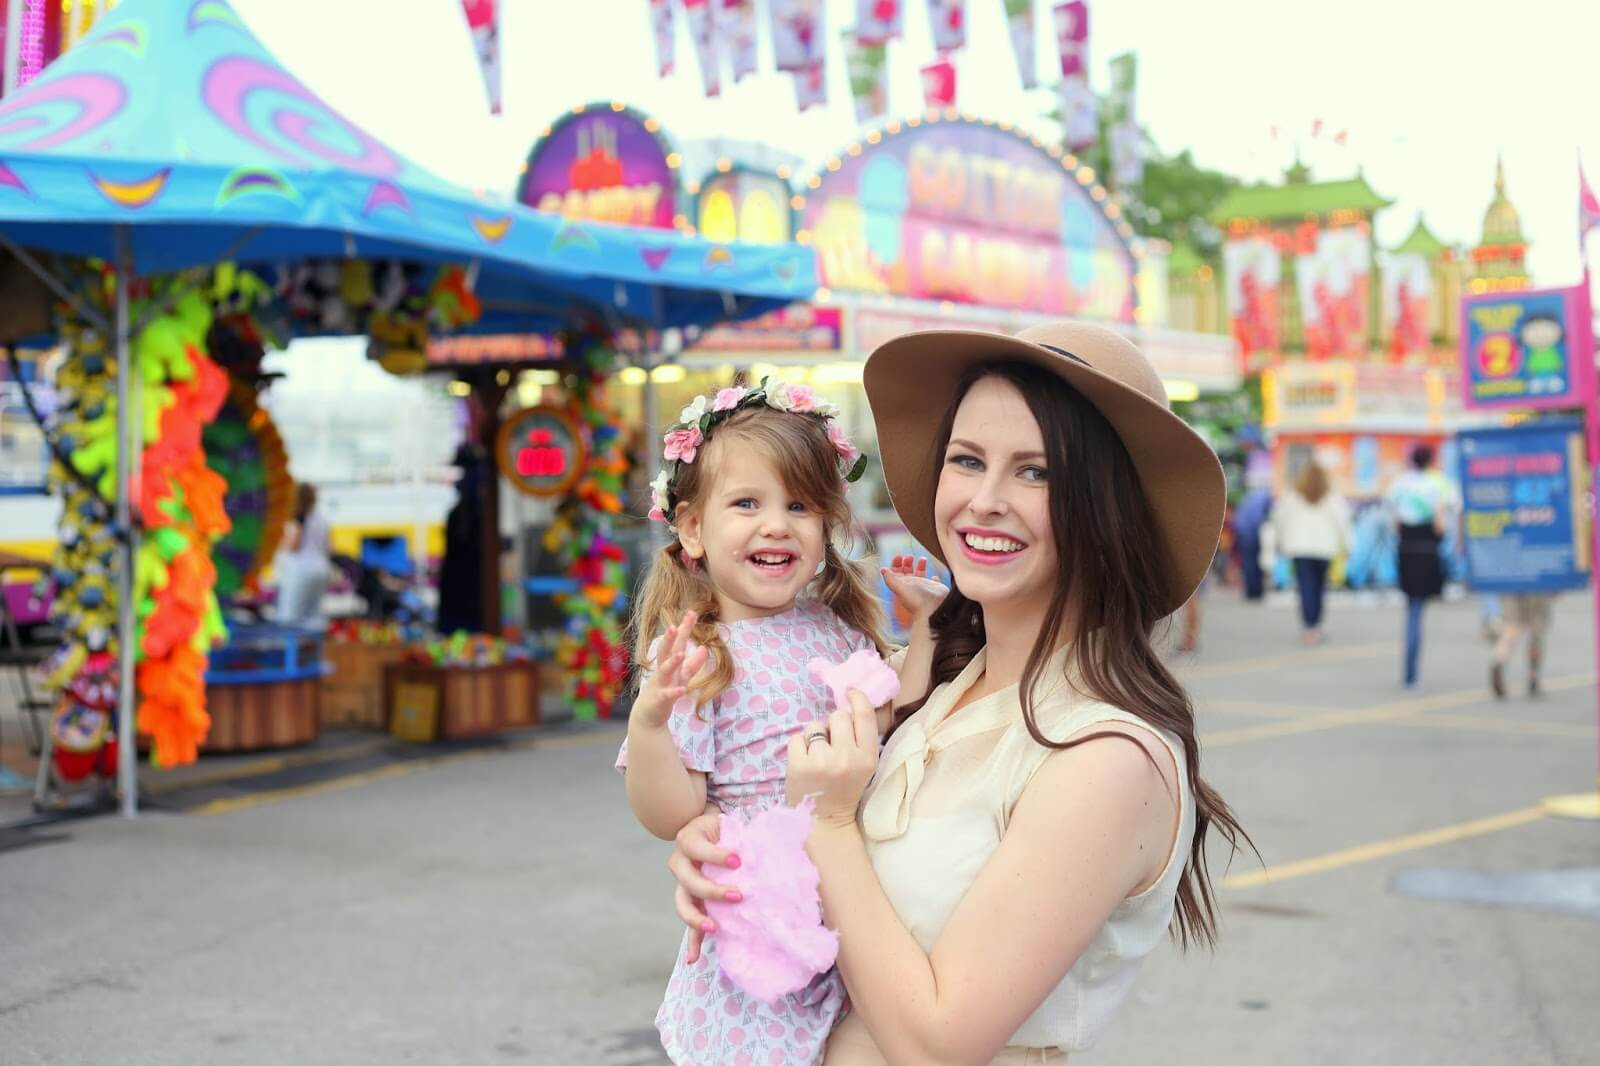 mommy and daughter at carnival